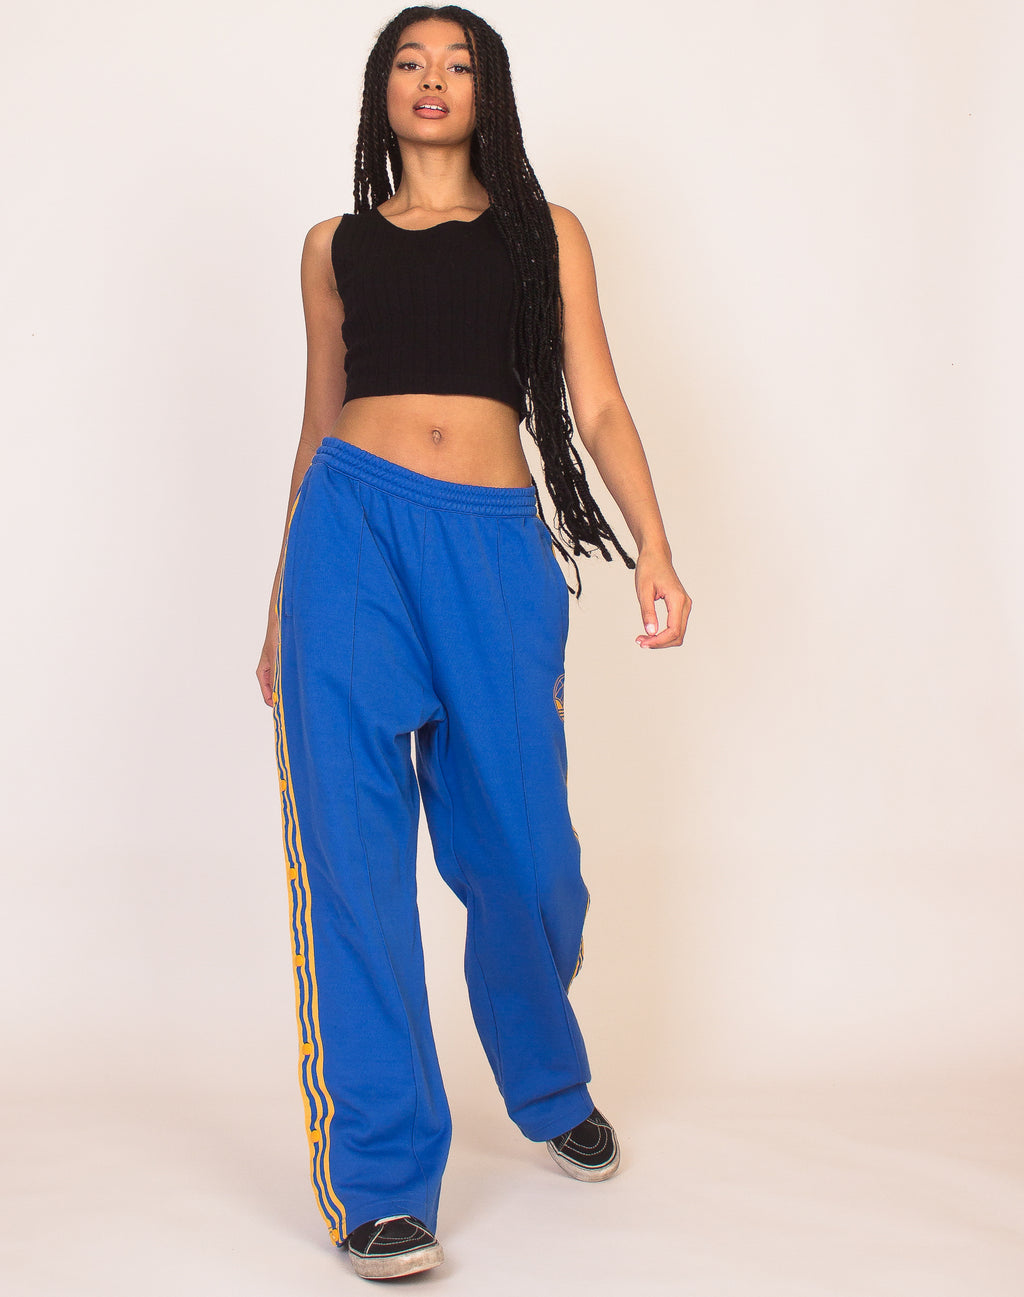 ADIDAS BLUE AND YELLOW POPPER JOGGERS